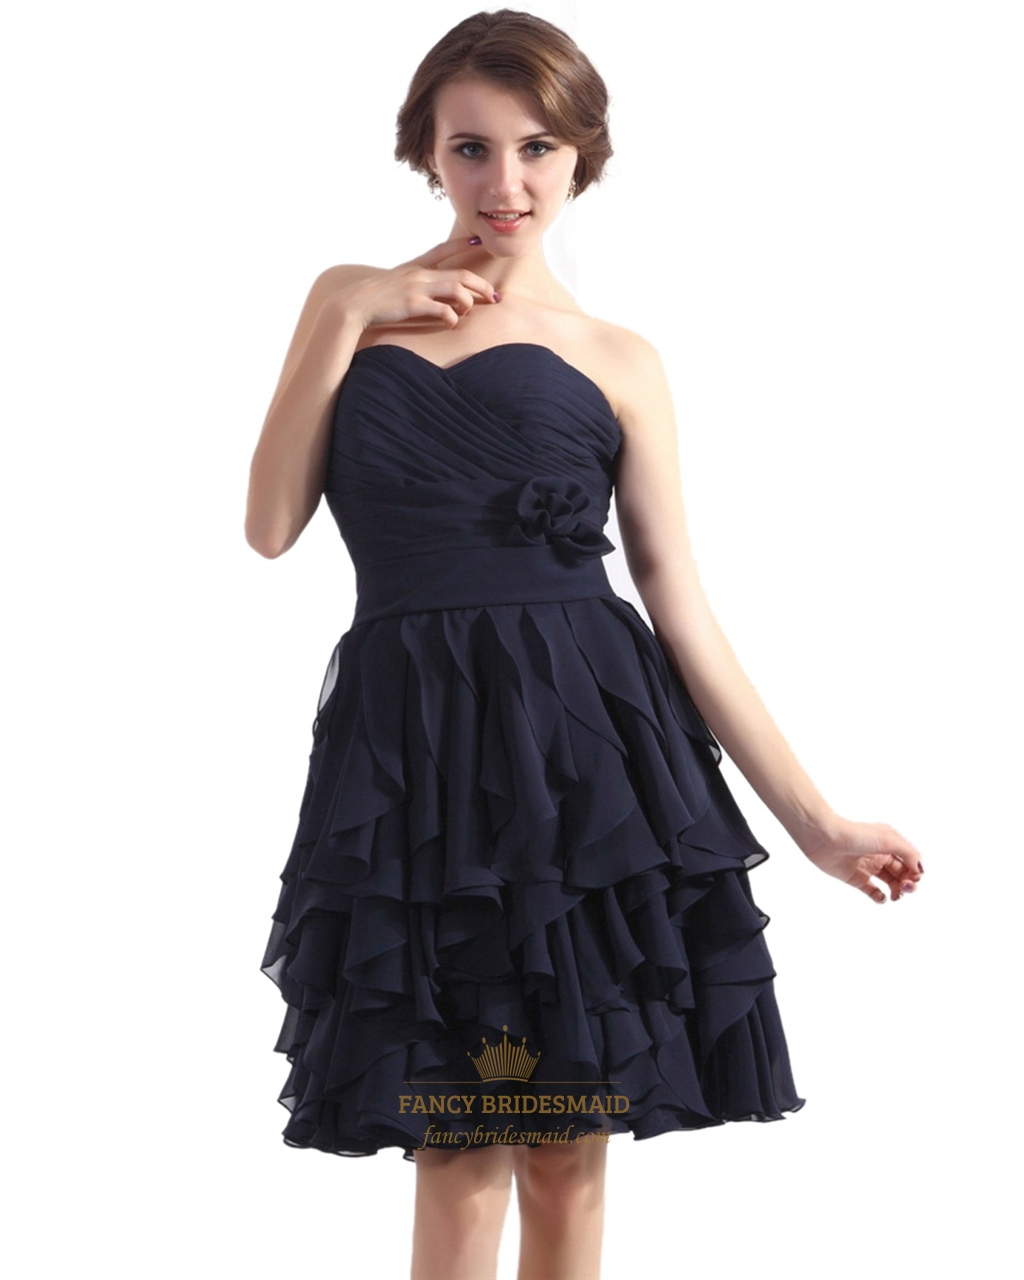 Chiffon Dressing Gown: Navy Blue Strapless A-Line Ruffle Skirt Chiffon Gown With